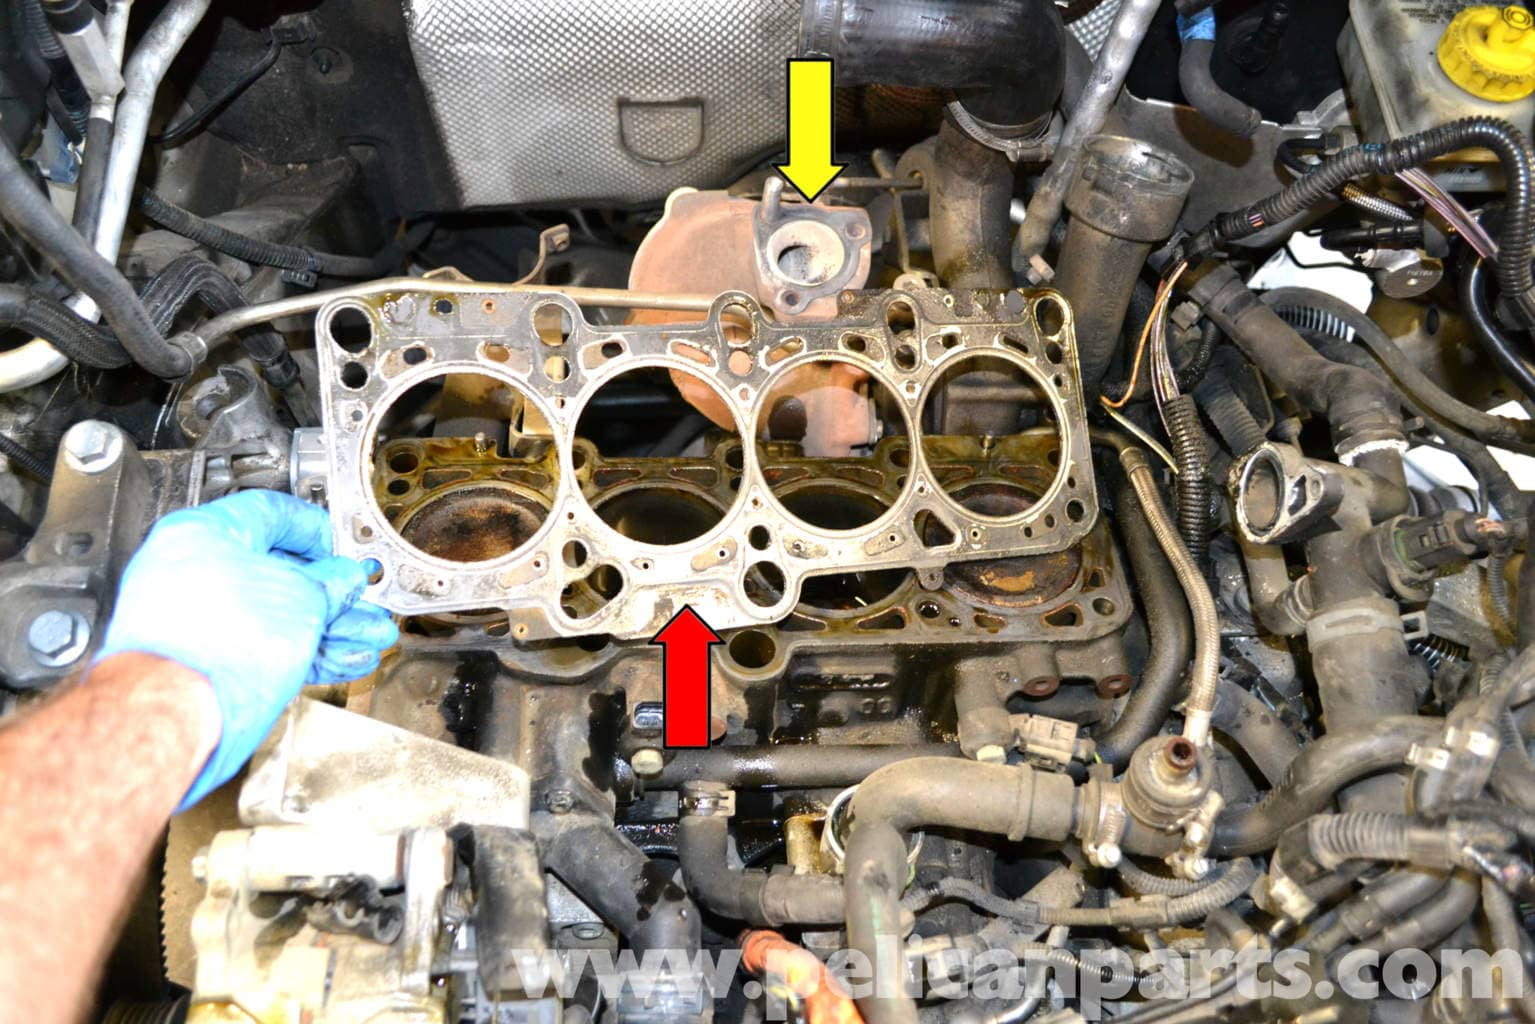 Removing Starter 2000 Daewoo Nubira also Repair Head Gasket On A 1989 Volkswagen Gti likewise 2001 Daewoo Lanos Intake Manifold Gasket Replacement additionally 2000 Daewoo Nubira Powertrain Control Emissions Diagnosis Manual furthermore 2001 Daewoo Leganza Install Hood Cable. on 2001 daewoo nubira owners manual